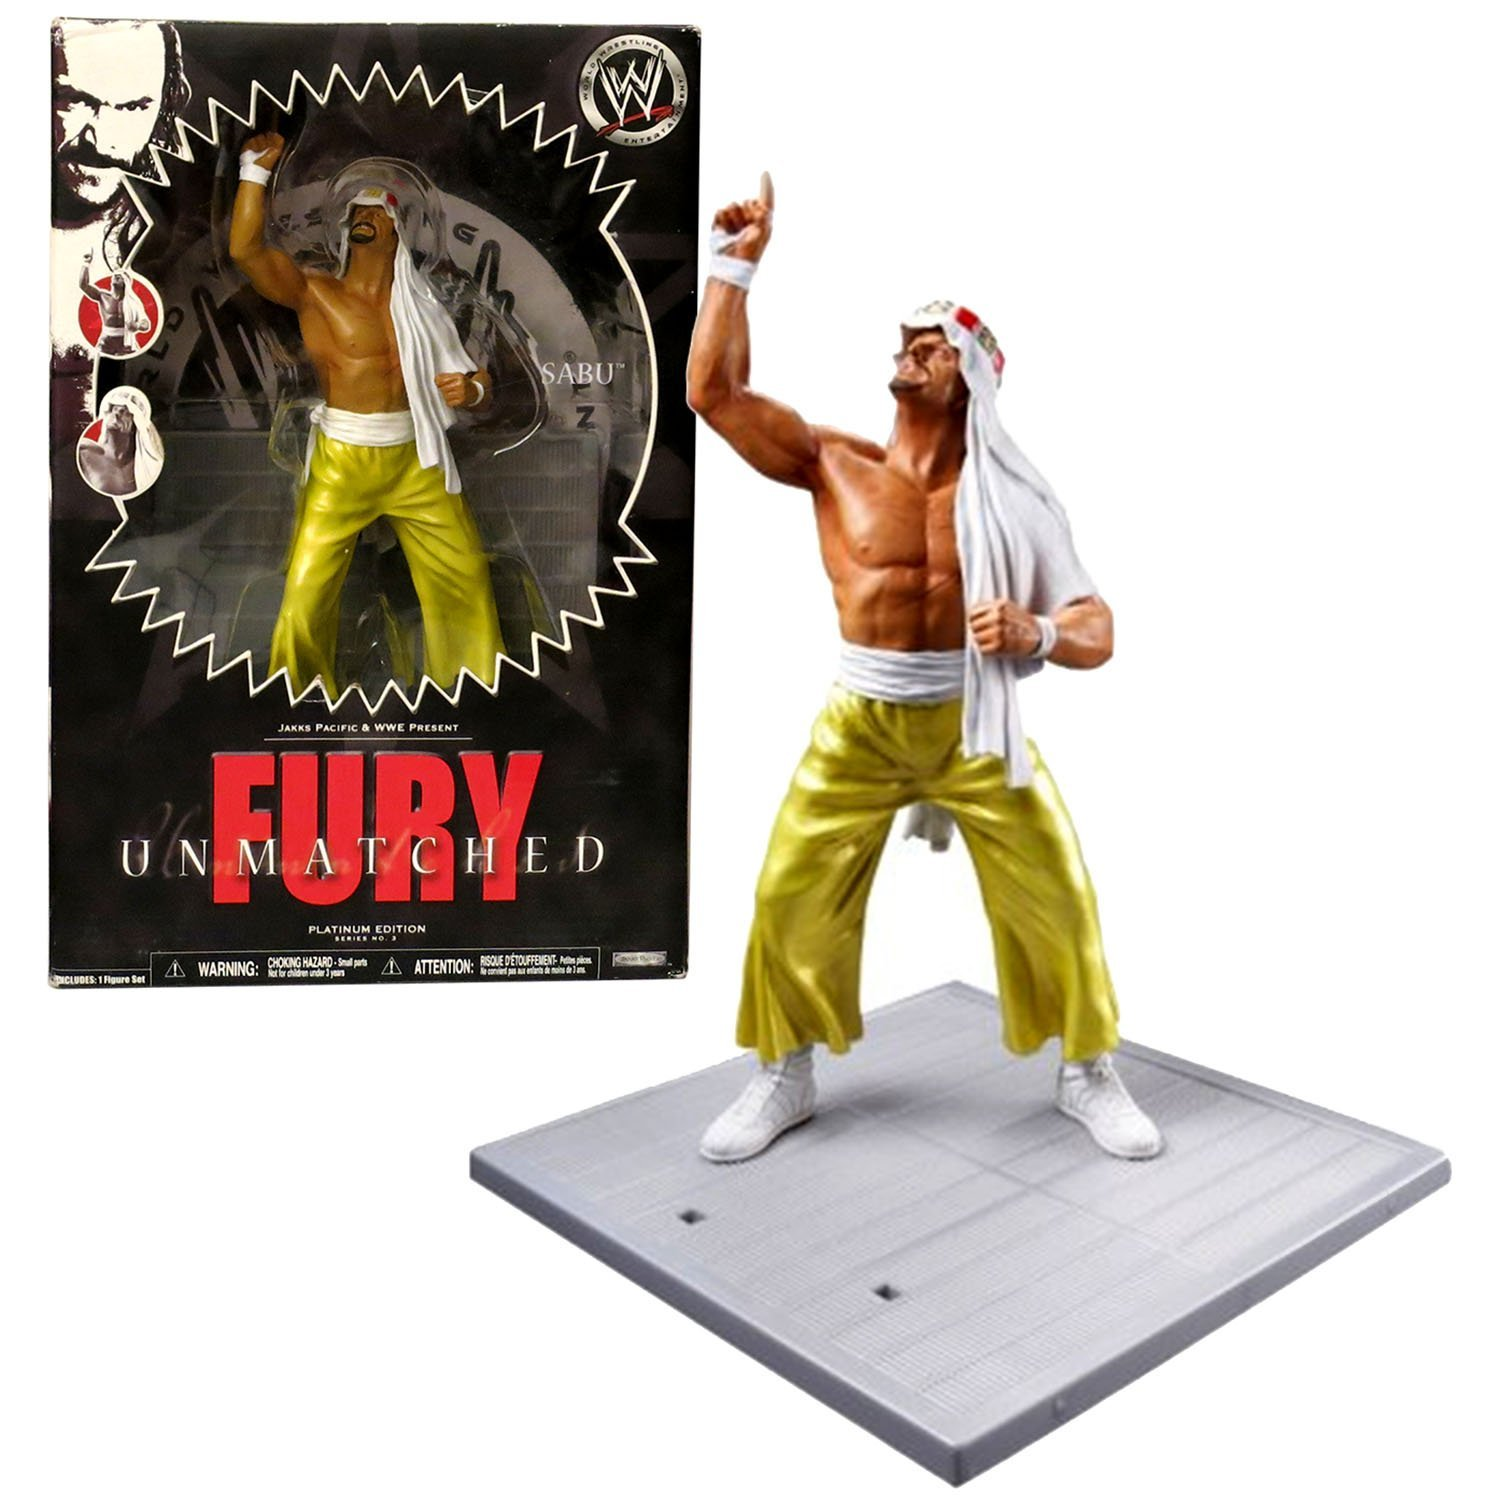 Primary image for World Wrestling Entertainment Jakks Pacific Year 2007 WWE Platinum Edition Fury